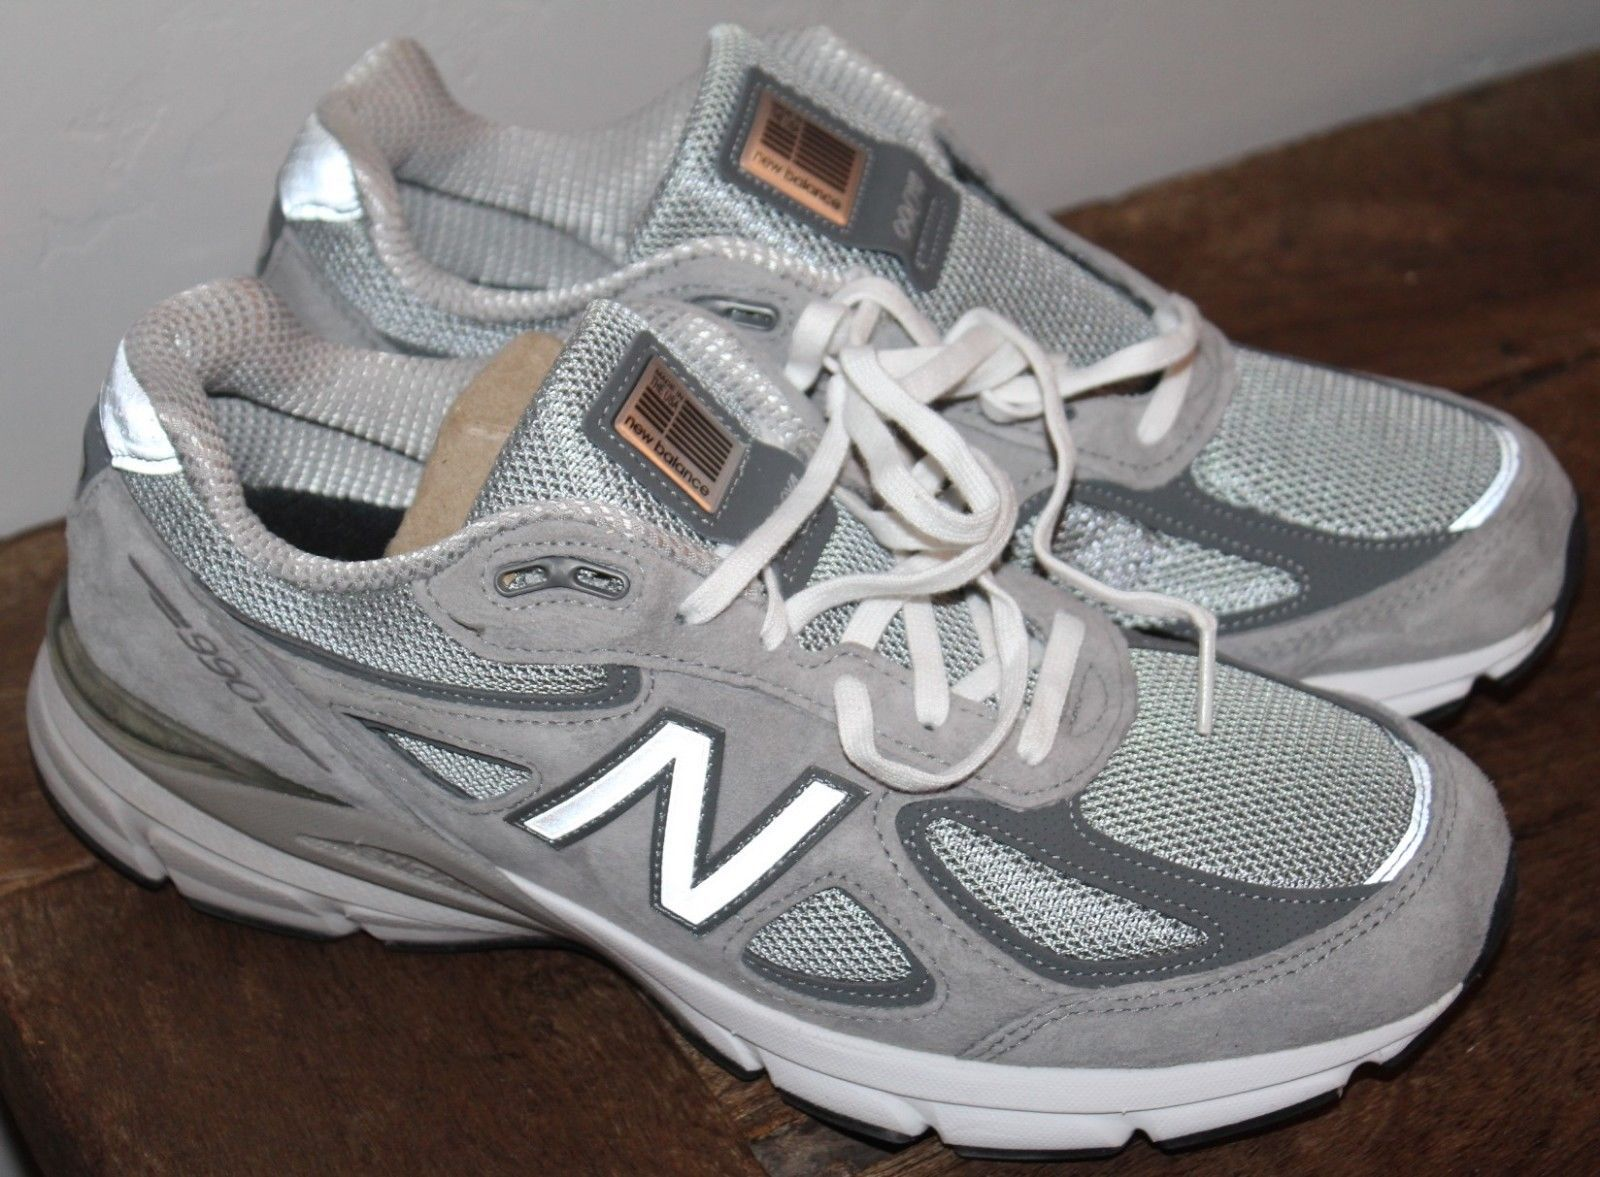 Men's BALANCE 990v4 Running Shoes Grey Castlerock NWOB 9 1/2 ...